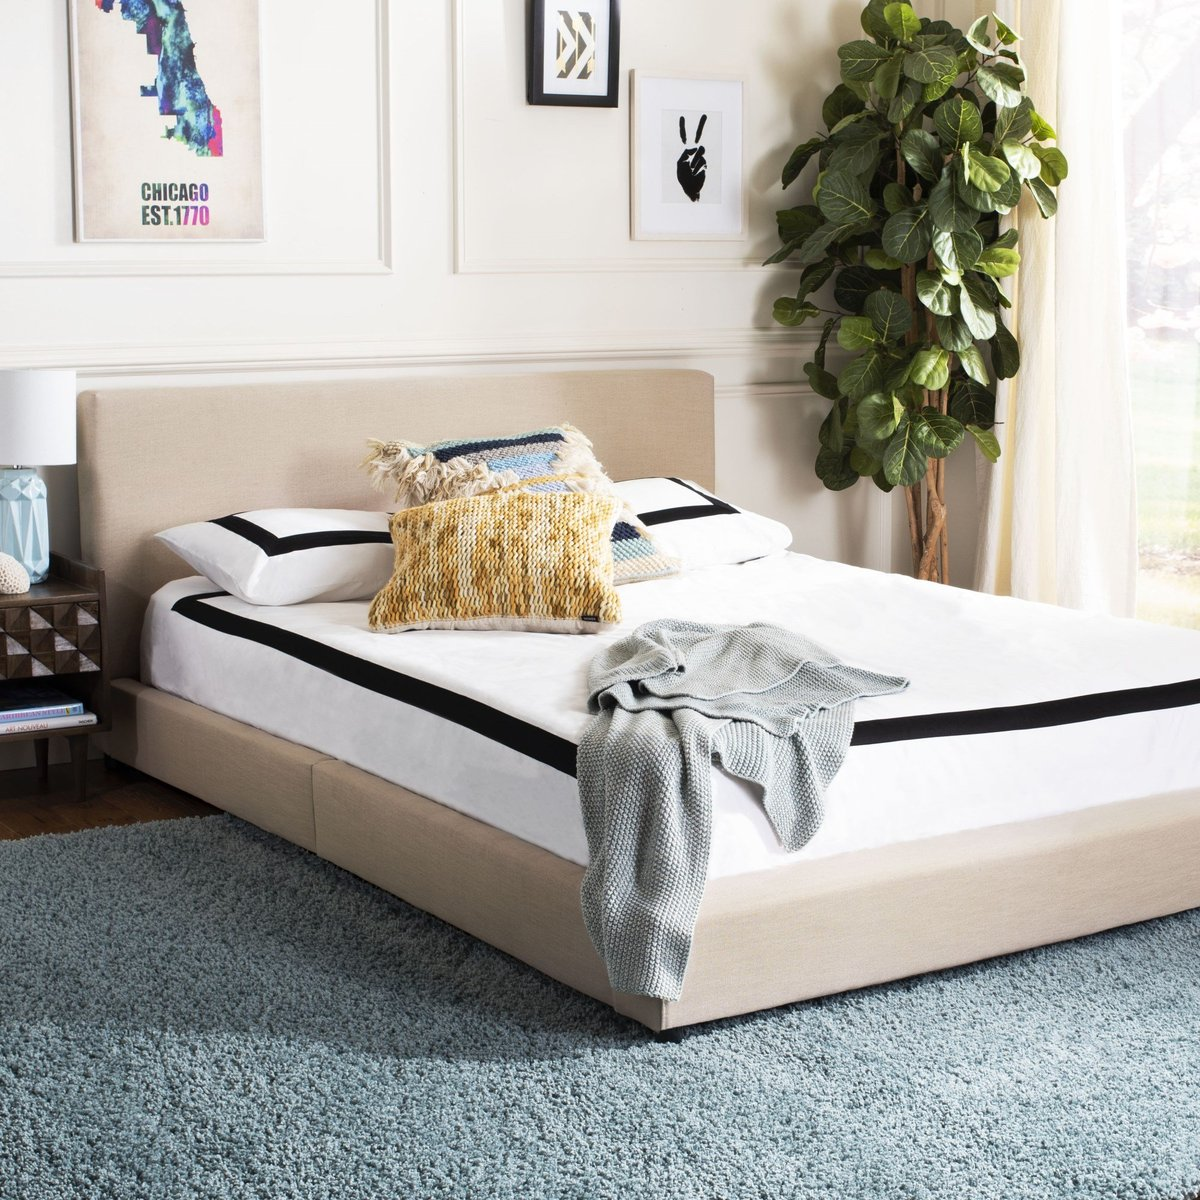 Aesthetic Outlines Bedroom Decor Ideas